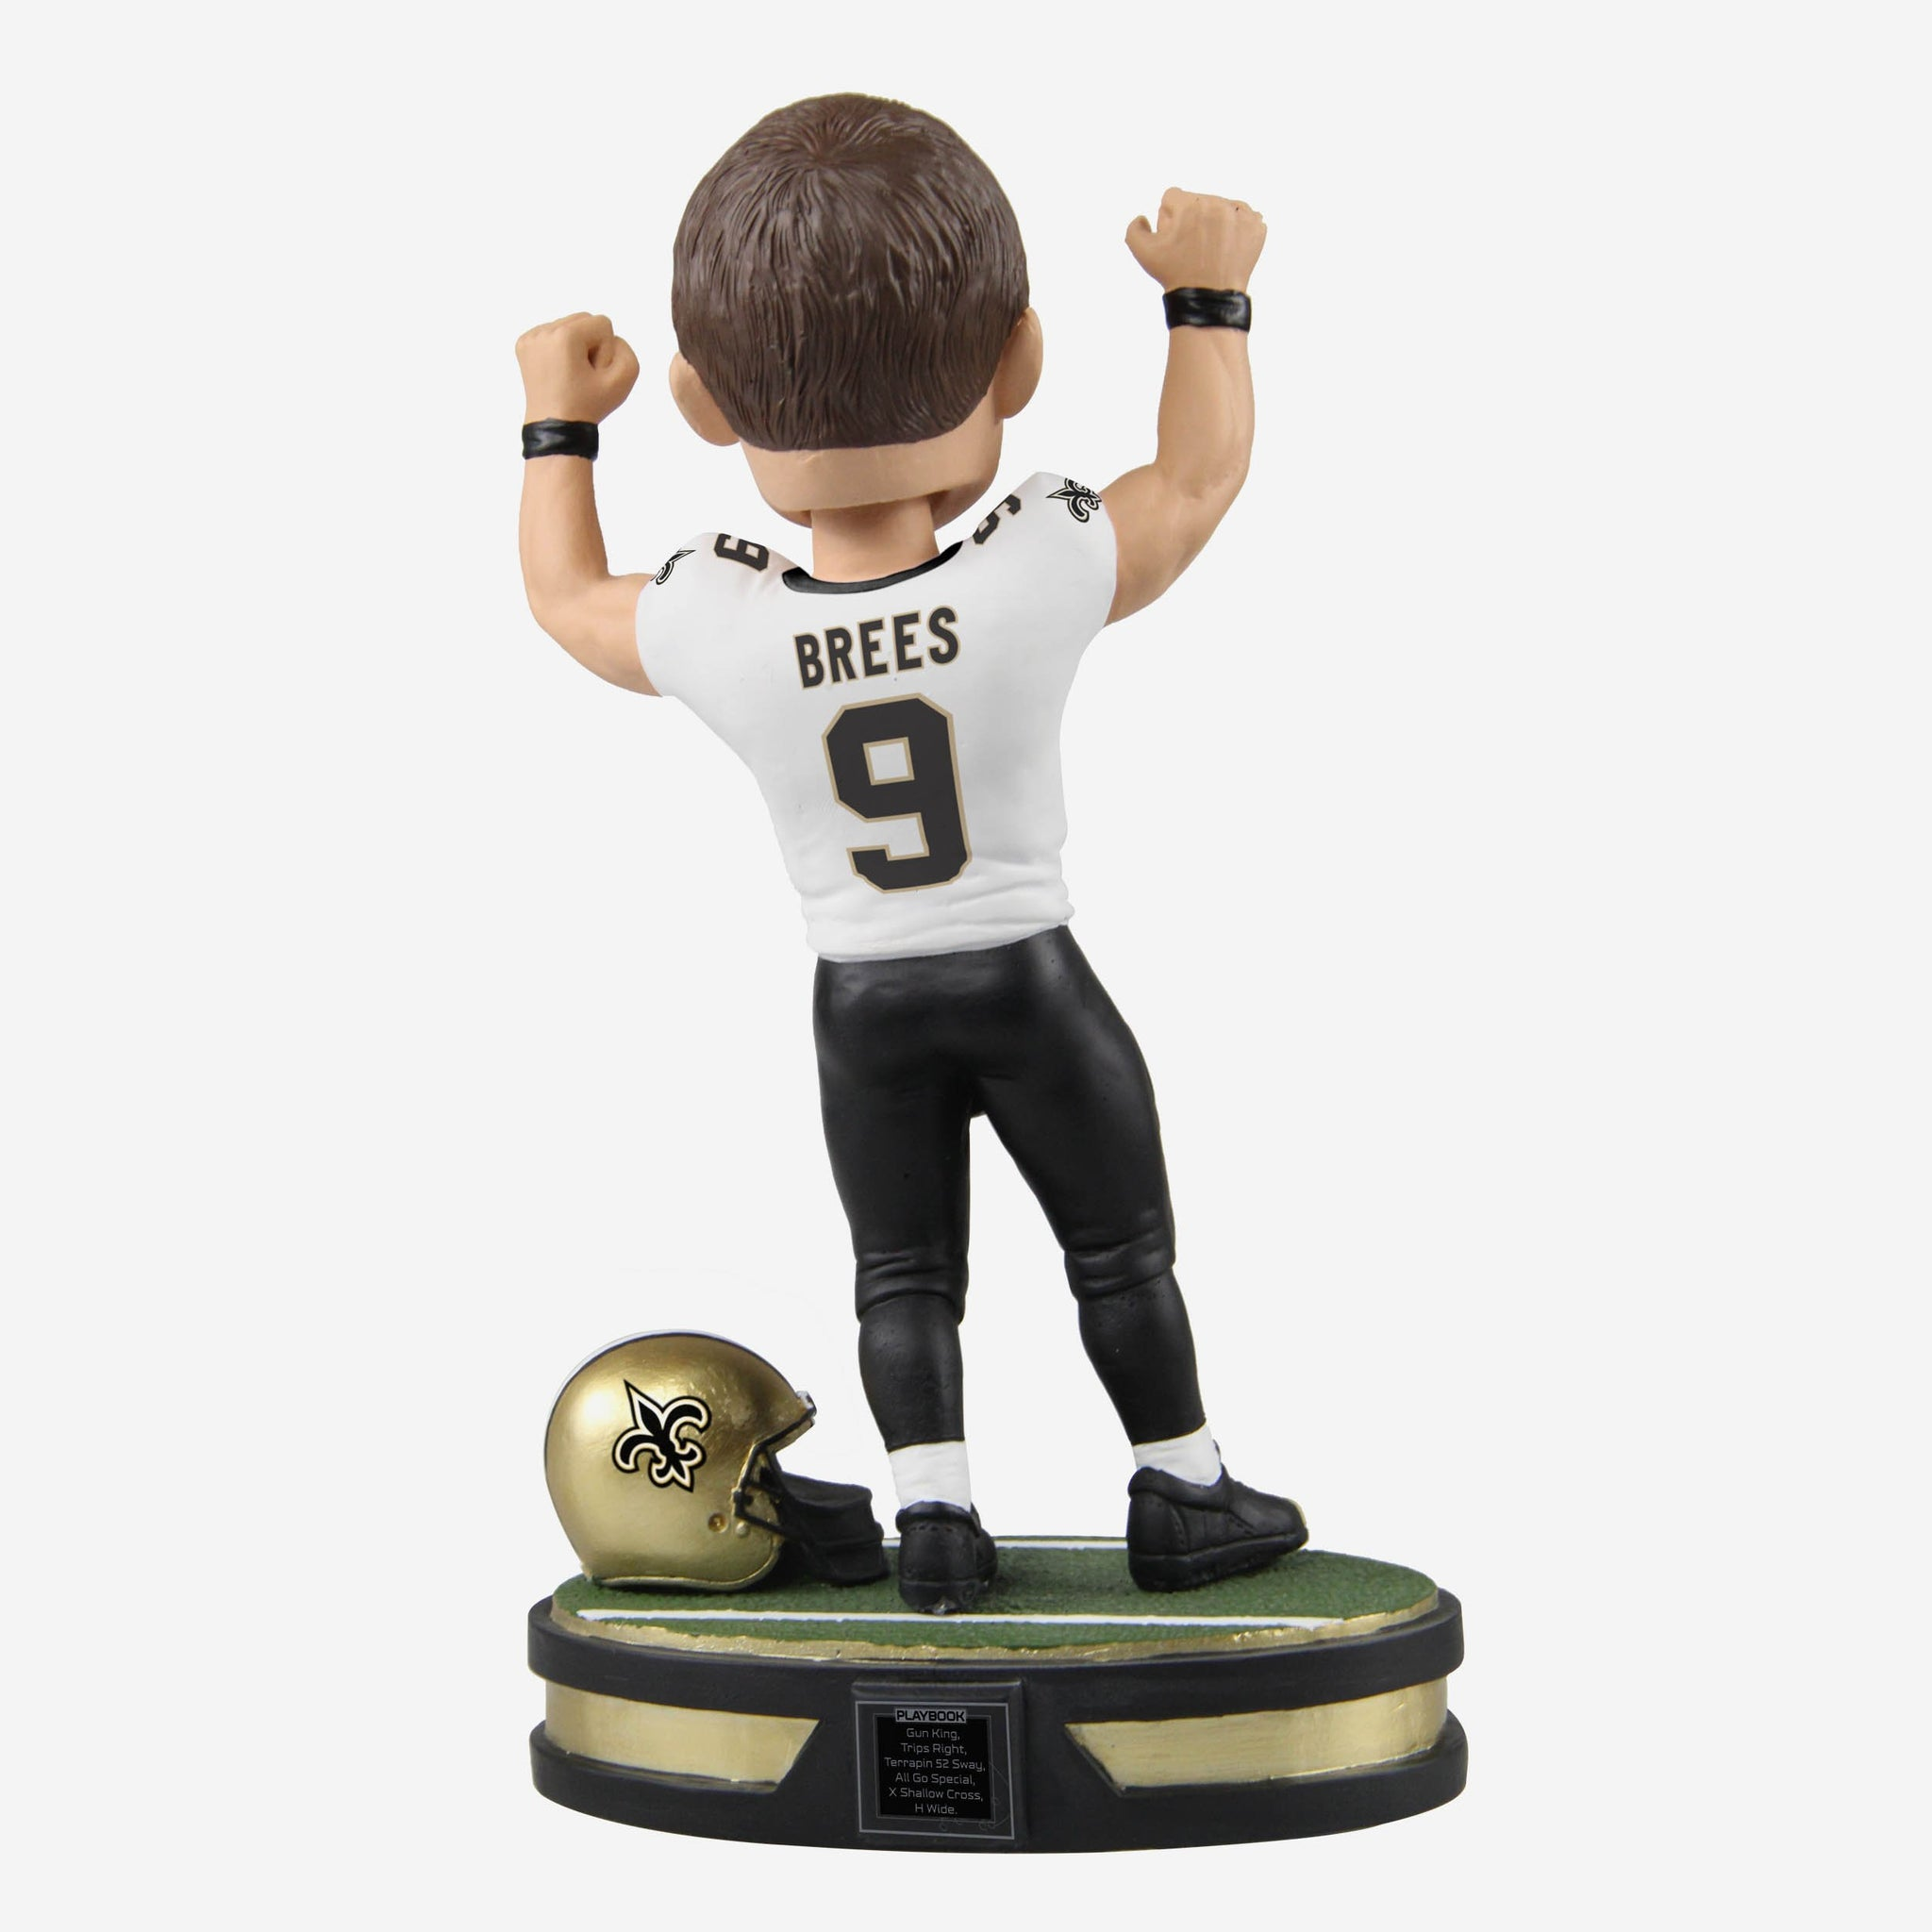 Drew Brees New Orleans Saints All-Time Passing Yards Record Bobblehead FOCO - FOCO.com